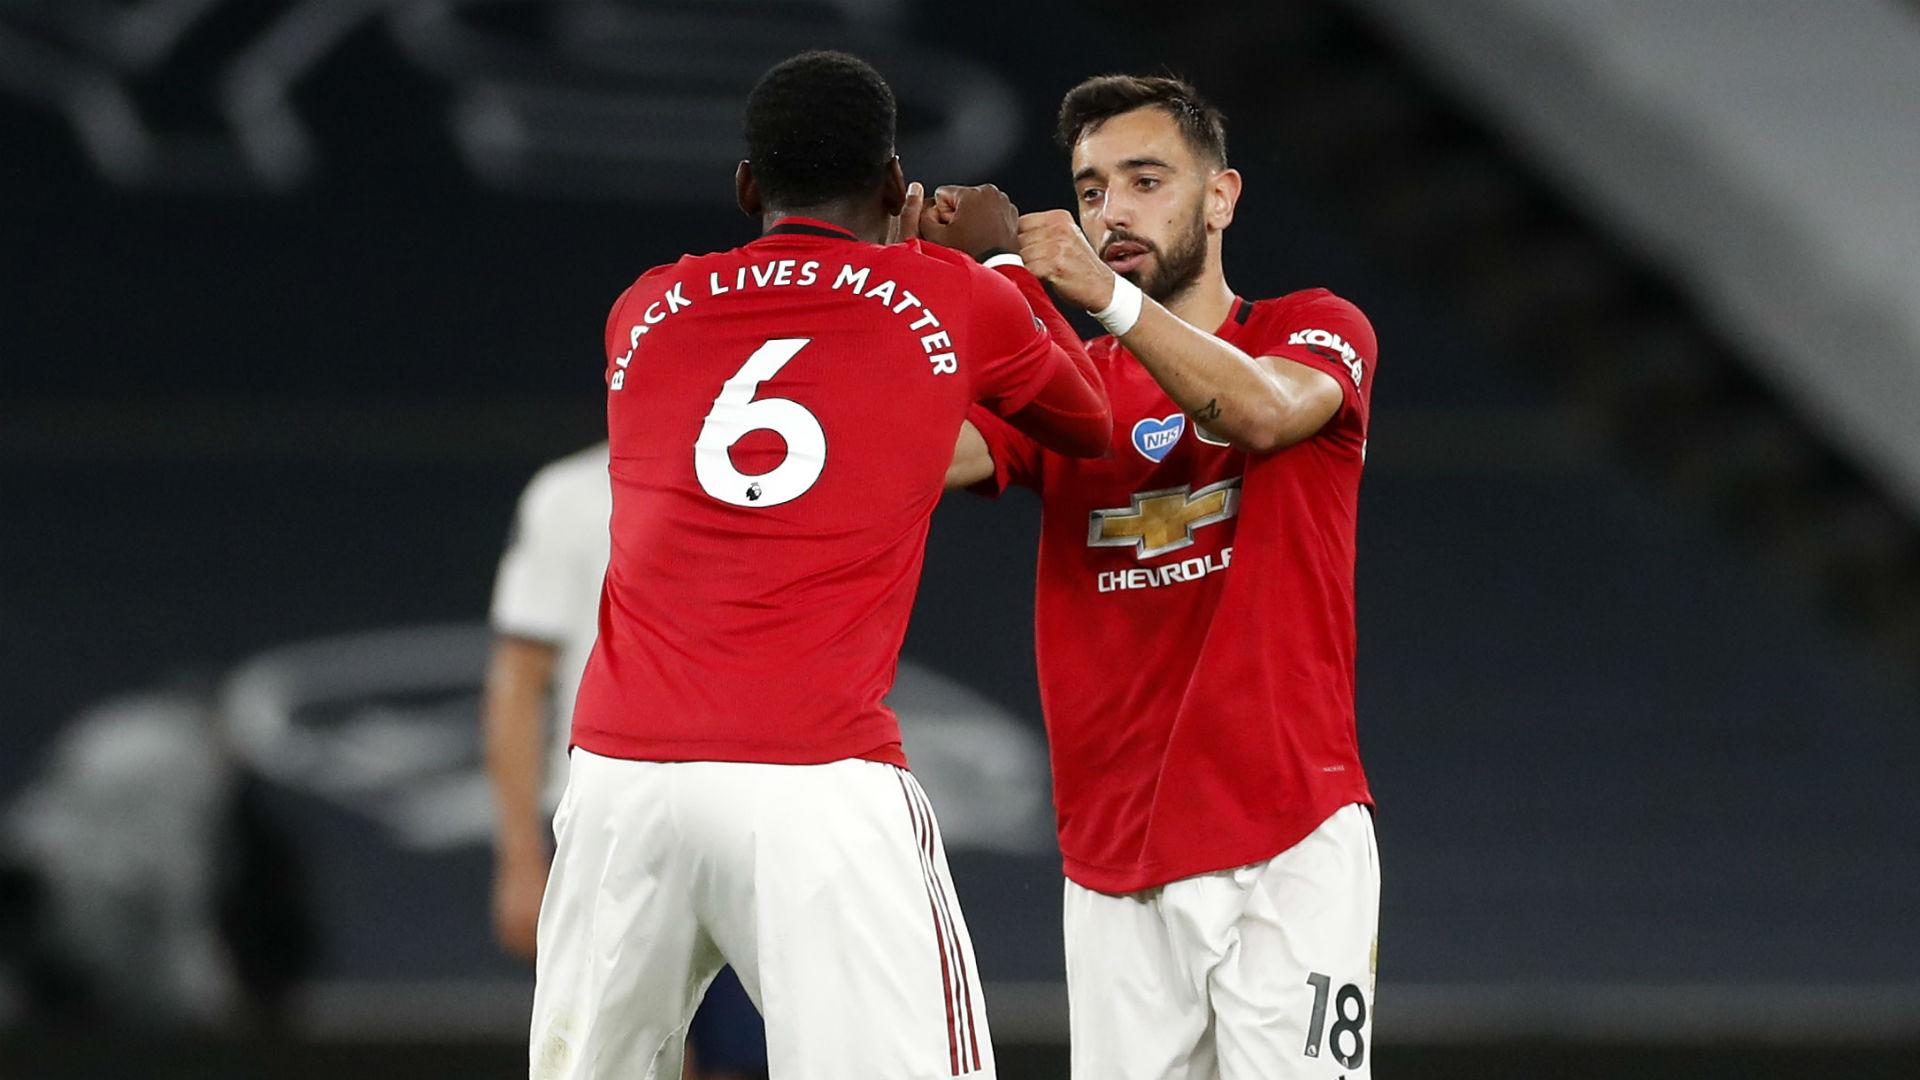 Bruno Fernandes finds 'good connection' with Pogba